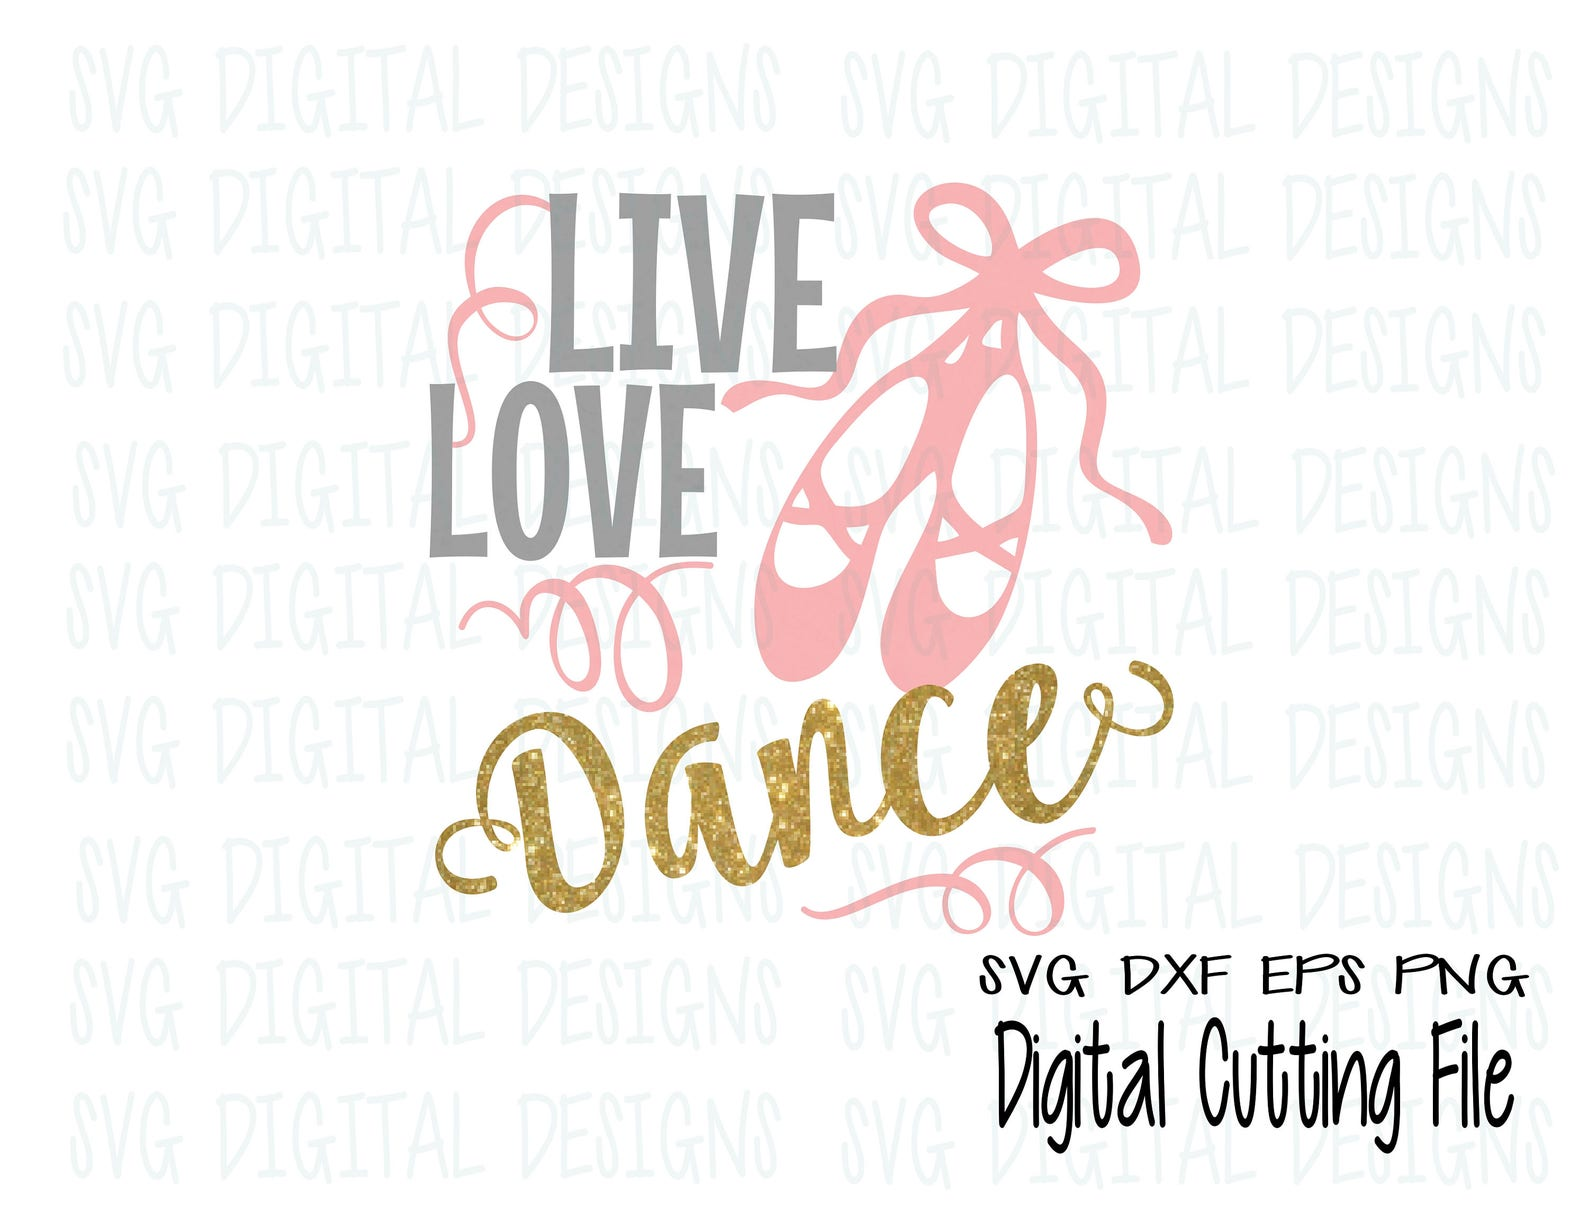 live love dance svg cut file design, ballerina ballet shoe dancing files for silhouette cricut & more, dance cutting files, svg